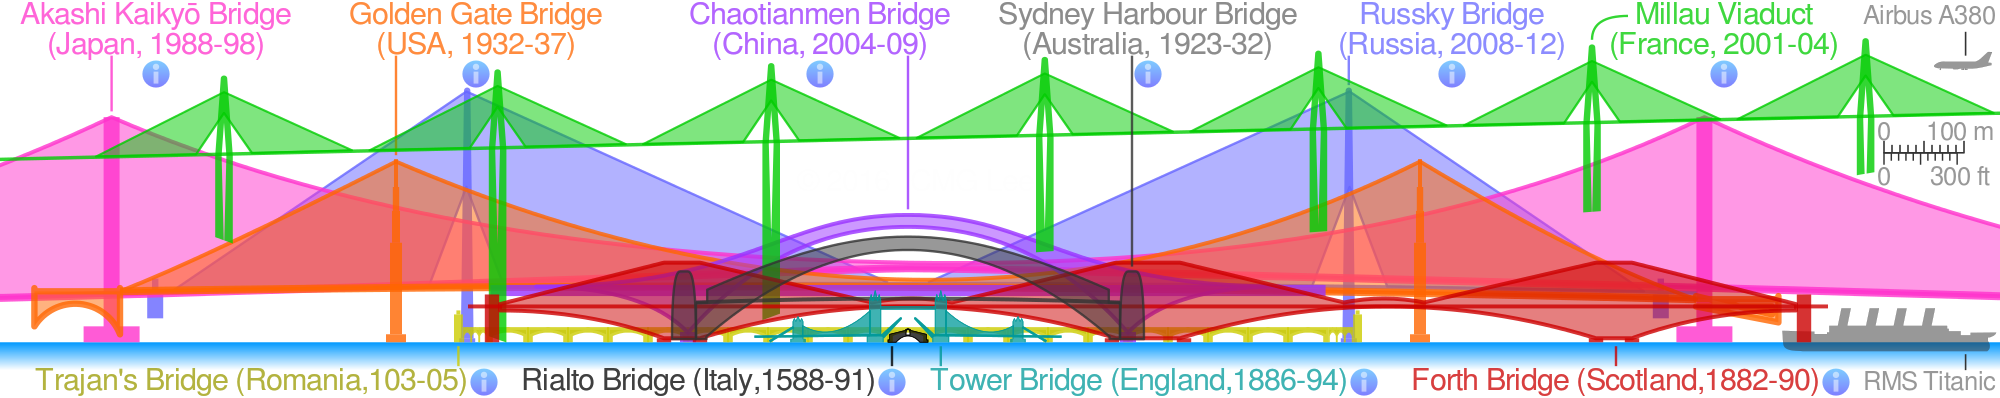 Sydney Harbour Bridge svg #9, Download drawings